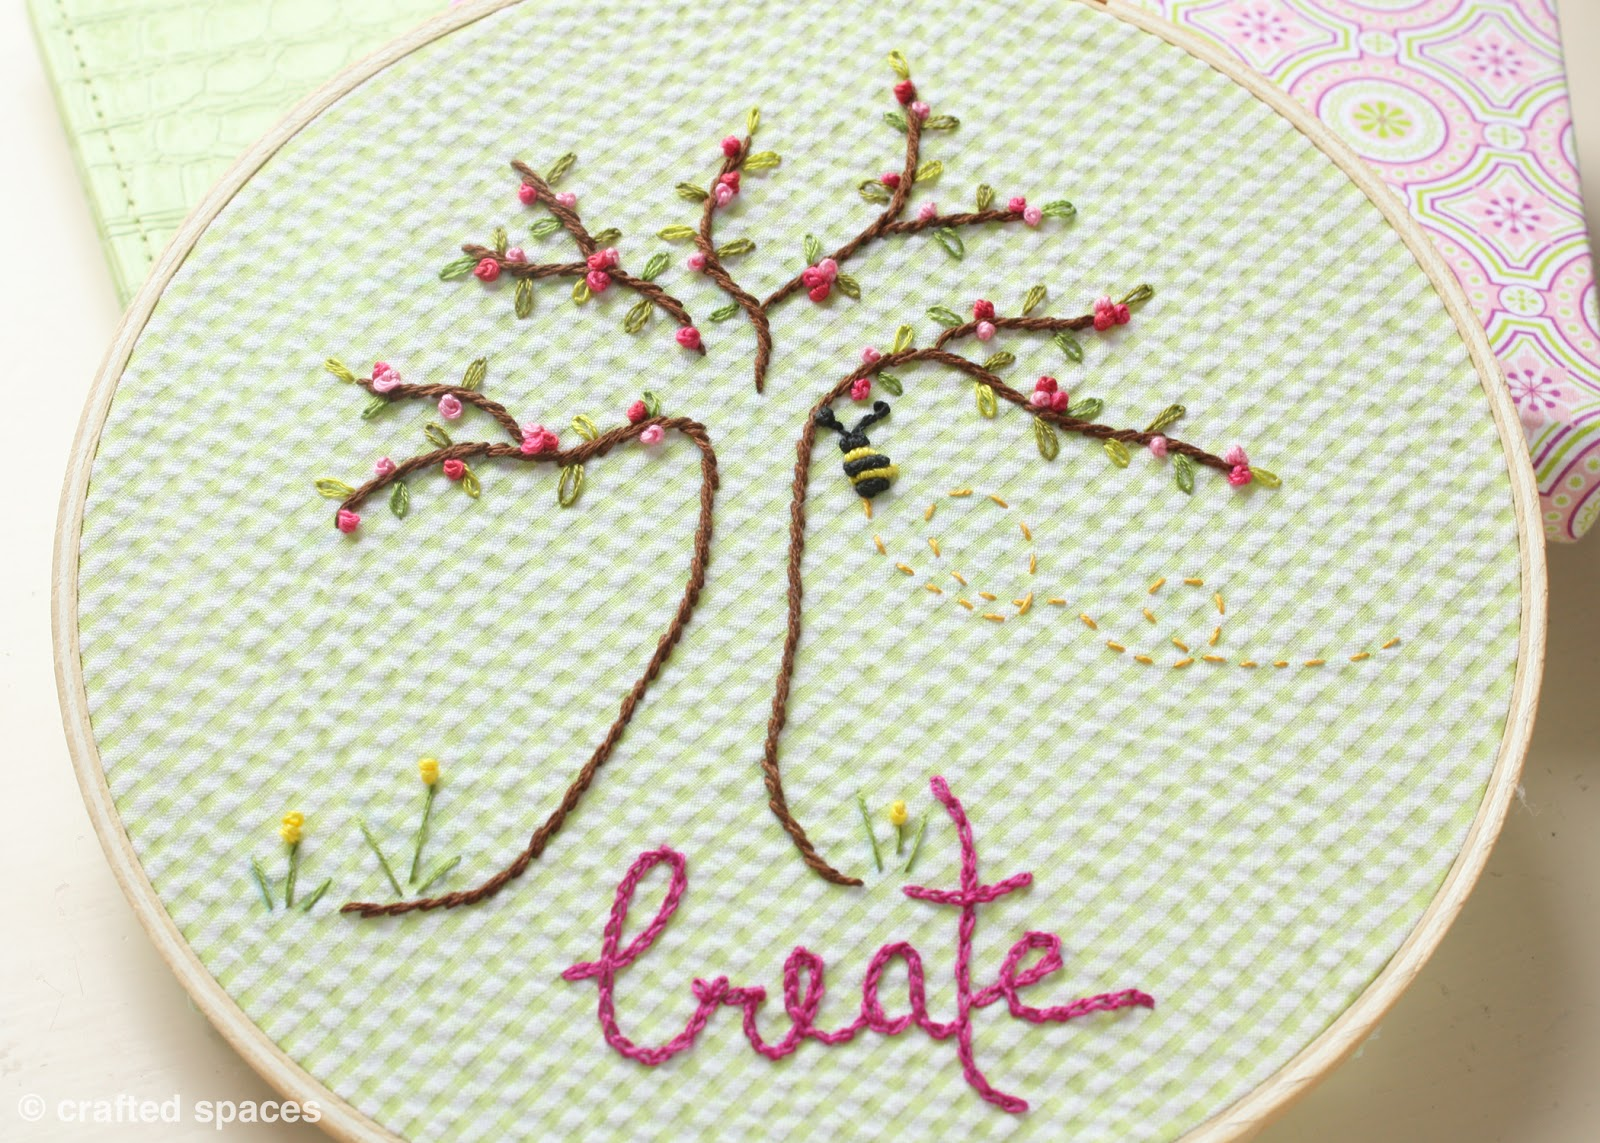 Crafted spaces embroidery hoop art